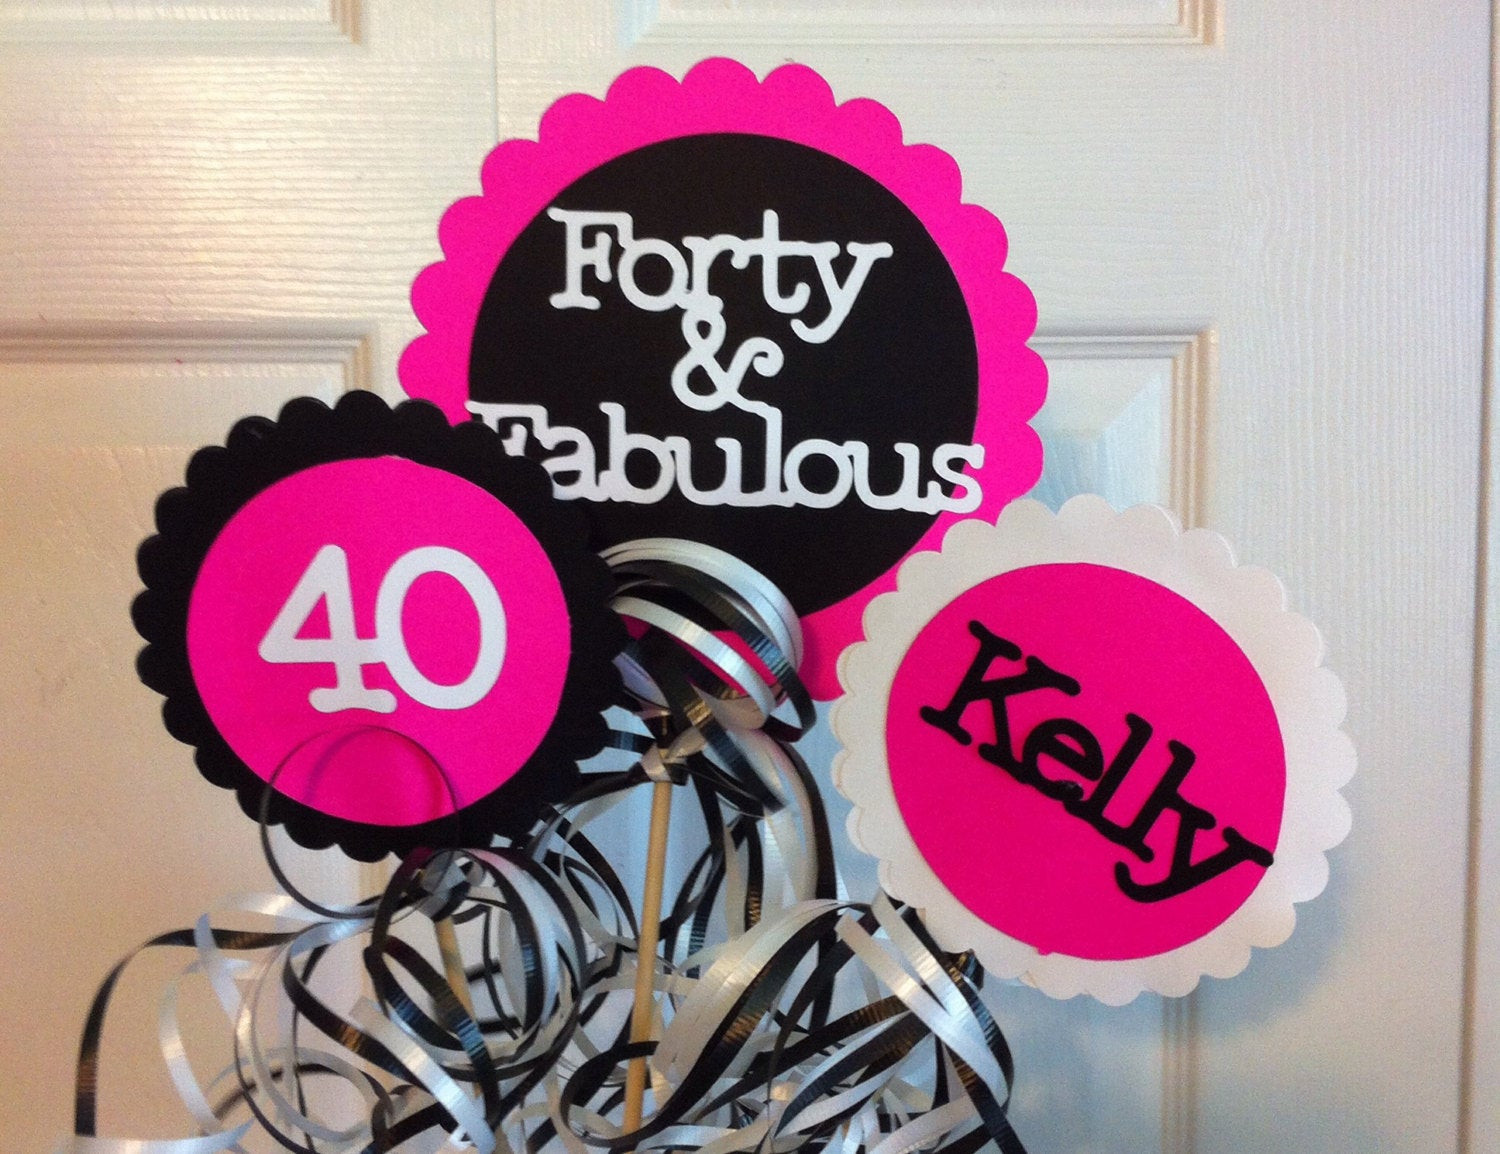 Best ideas about 40 Birthday Decorations . Save or Pin 40th Birthday Decorations 3 piece Centerpiece Sign Set with Now.